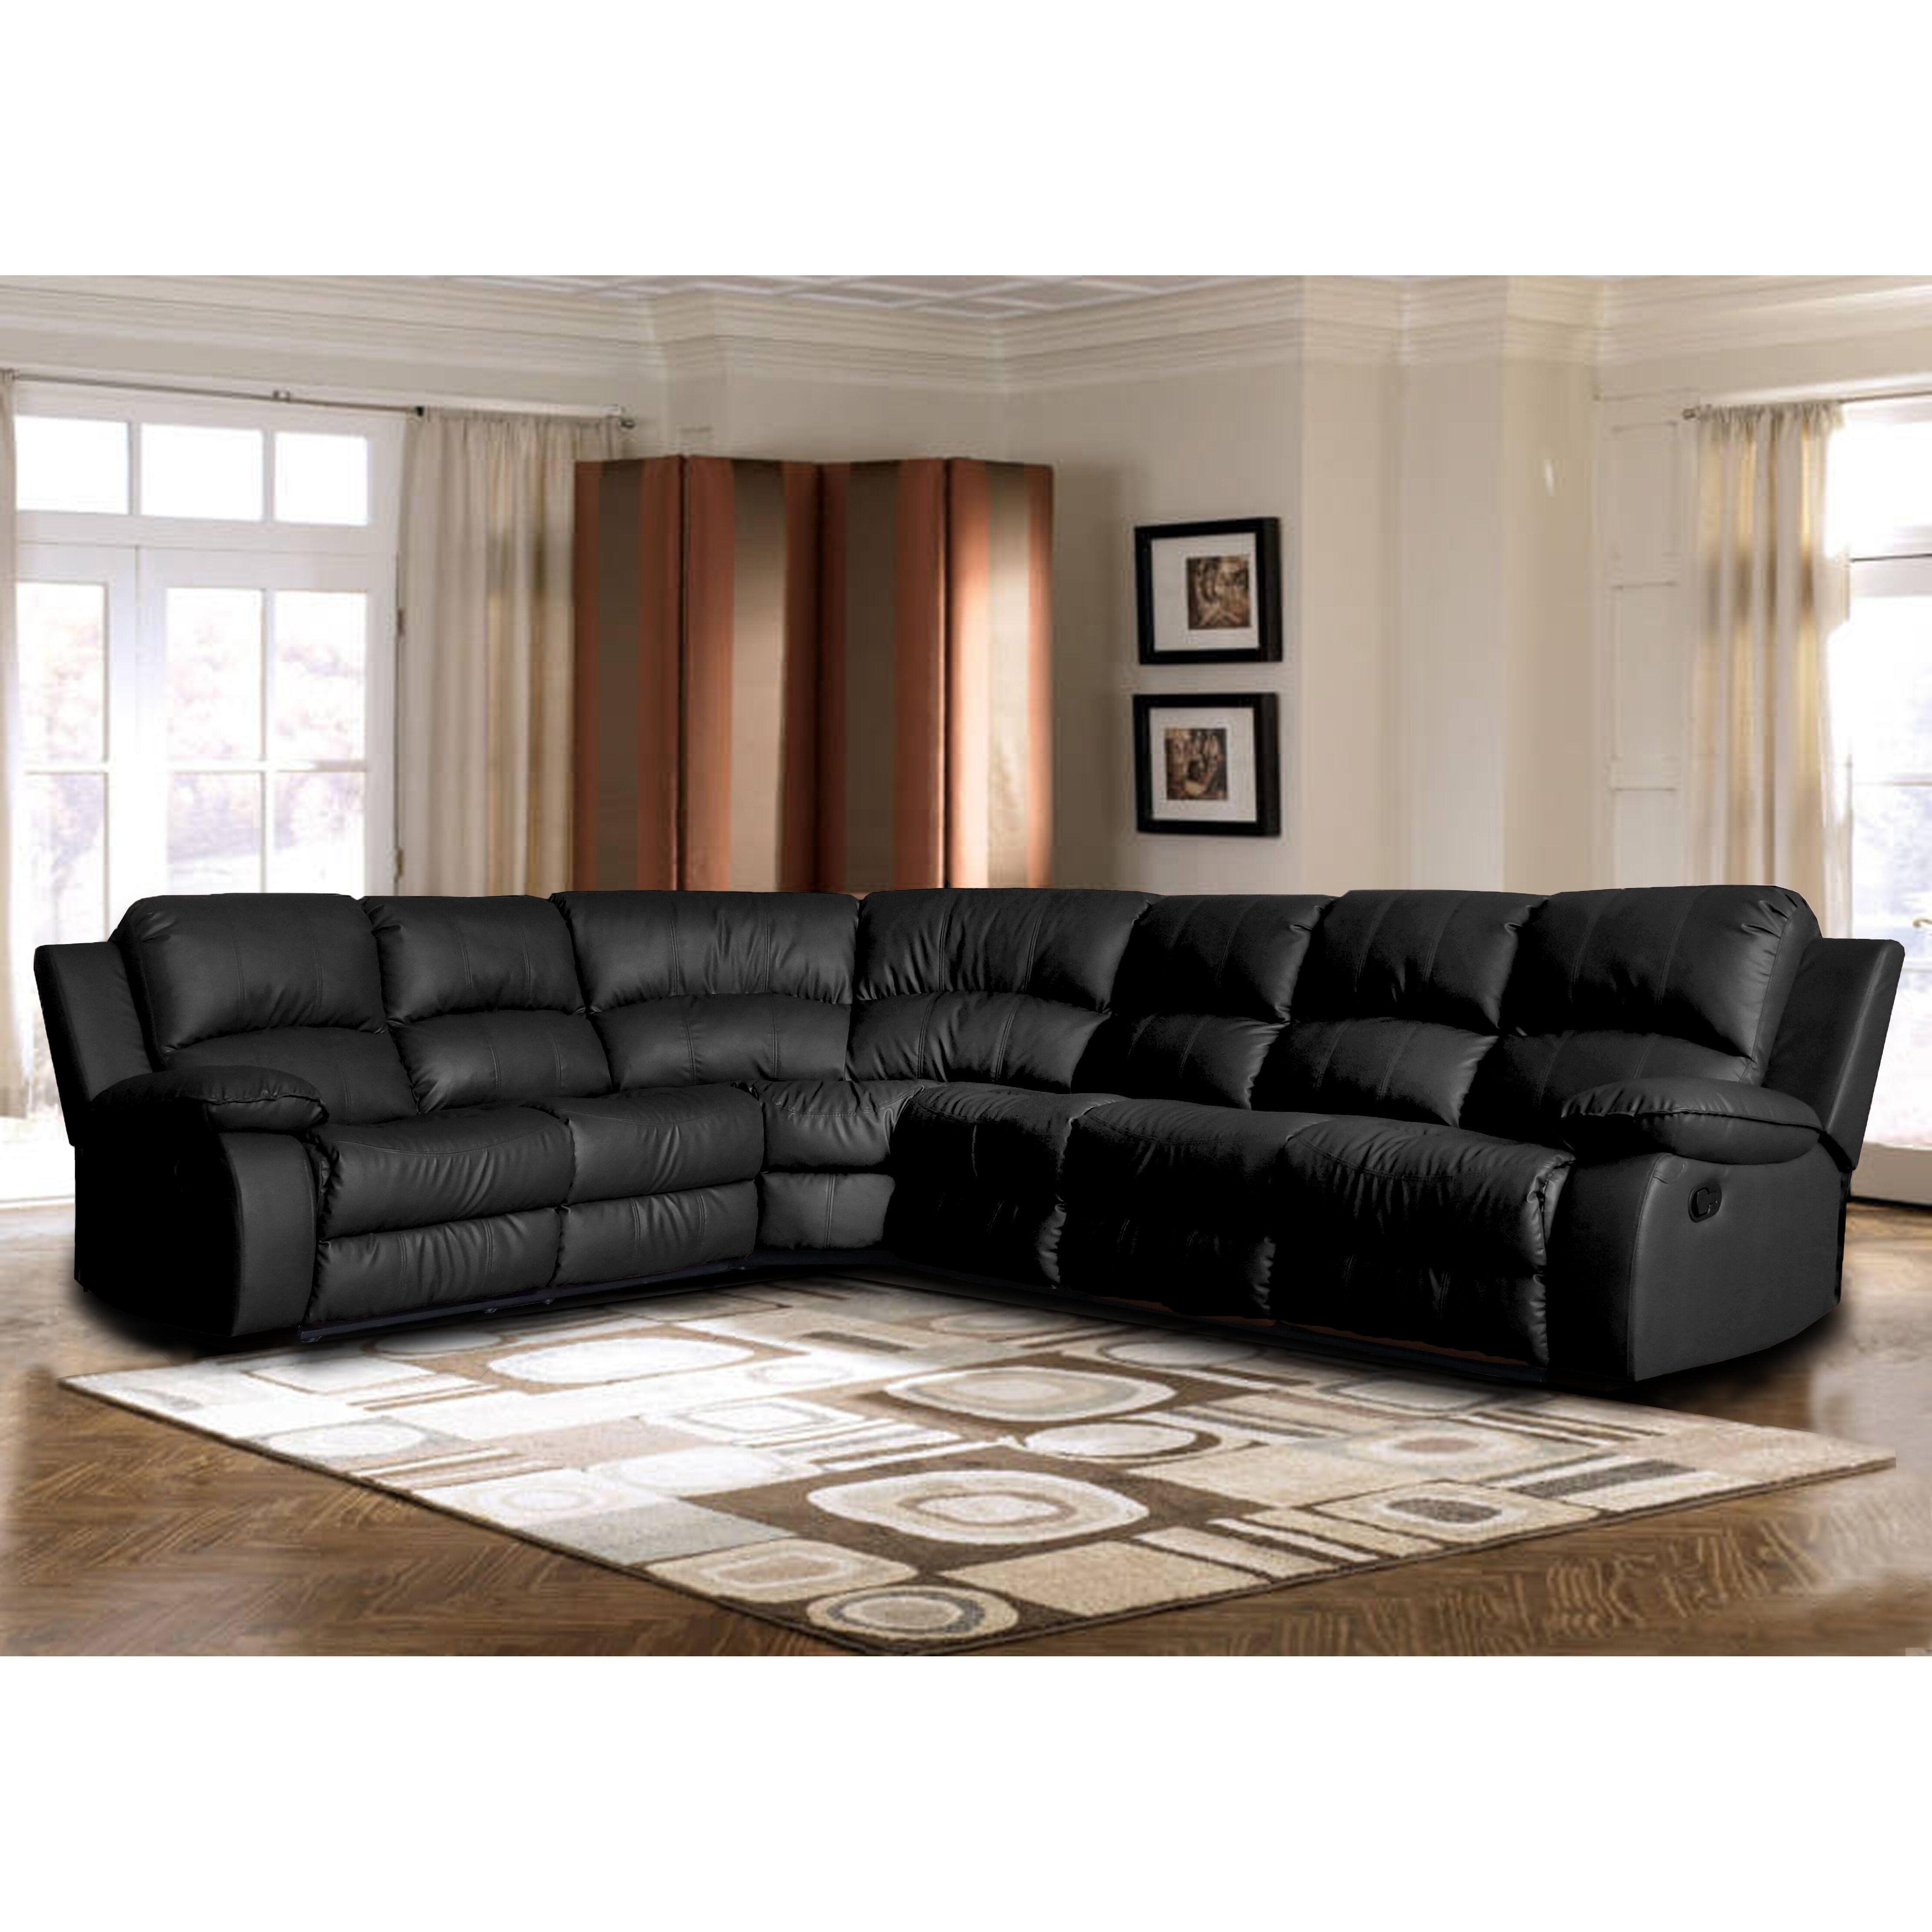 Madison home usa classic sectional reviews wayfair for Classic homes reviews